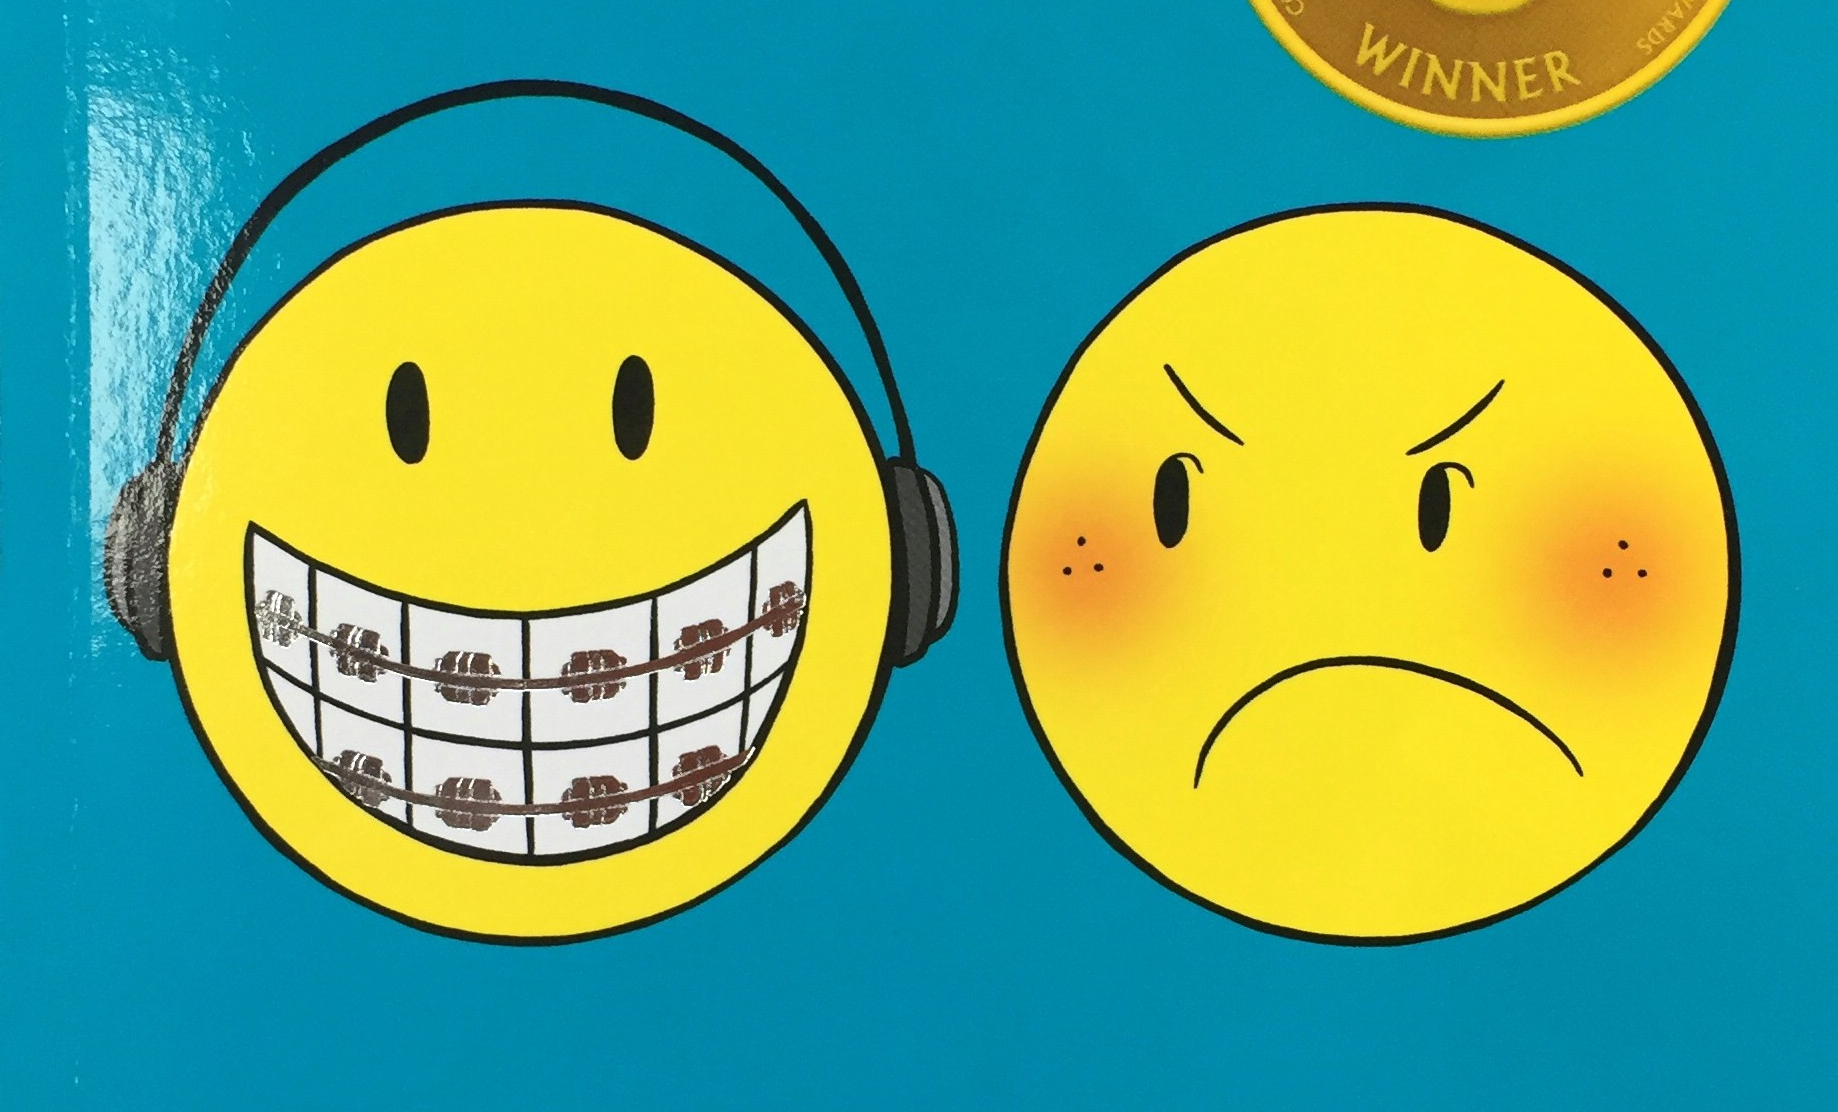 Sisters book cover by Raina Telgemeier close up of smiley face with braces and headphones and angry face